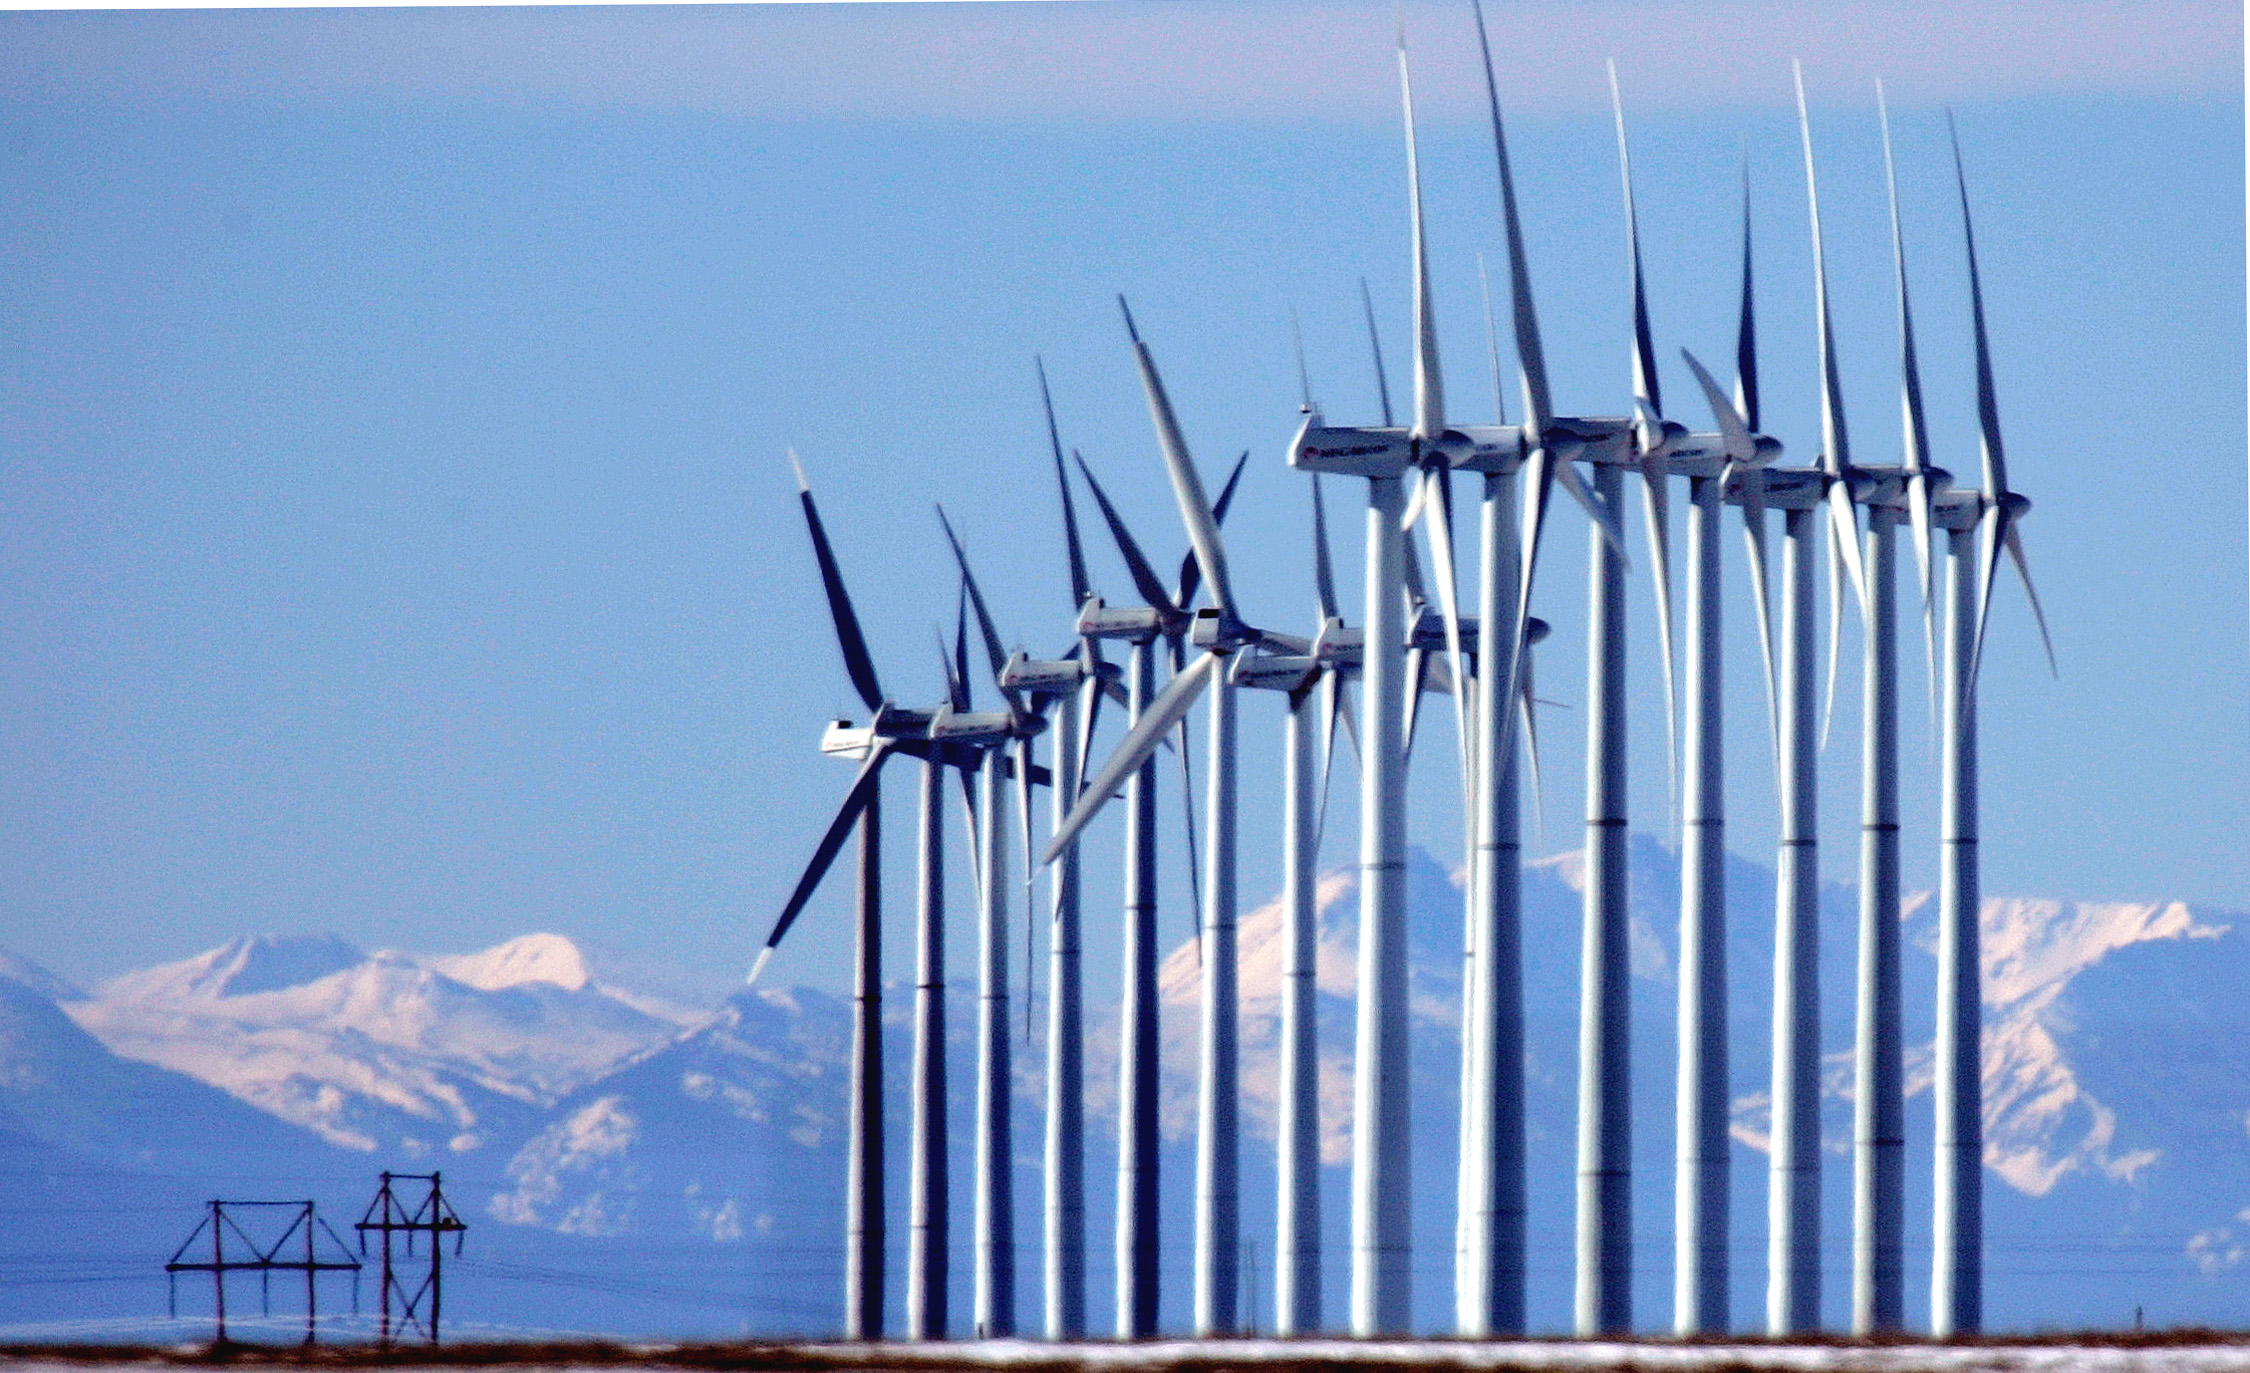 <p>The Rocky Mountains can be seen in the distance as wind mills generate electricity at the Ponnequin Wind Farm near Carr, Colo.</p>